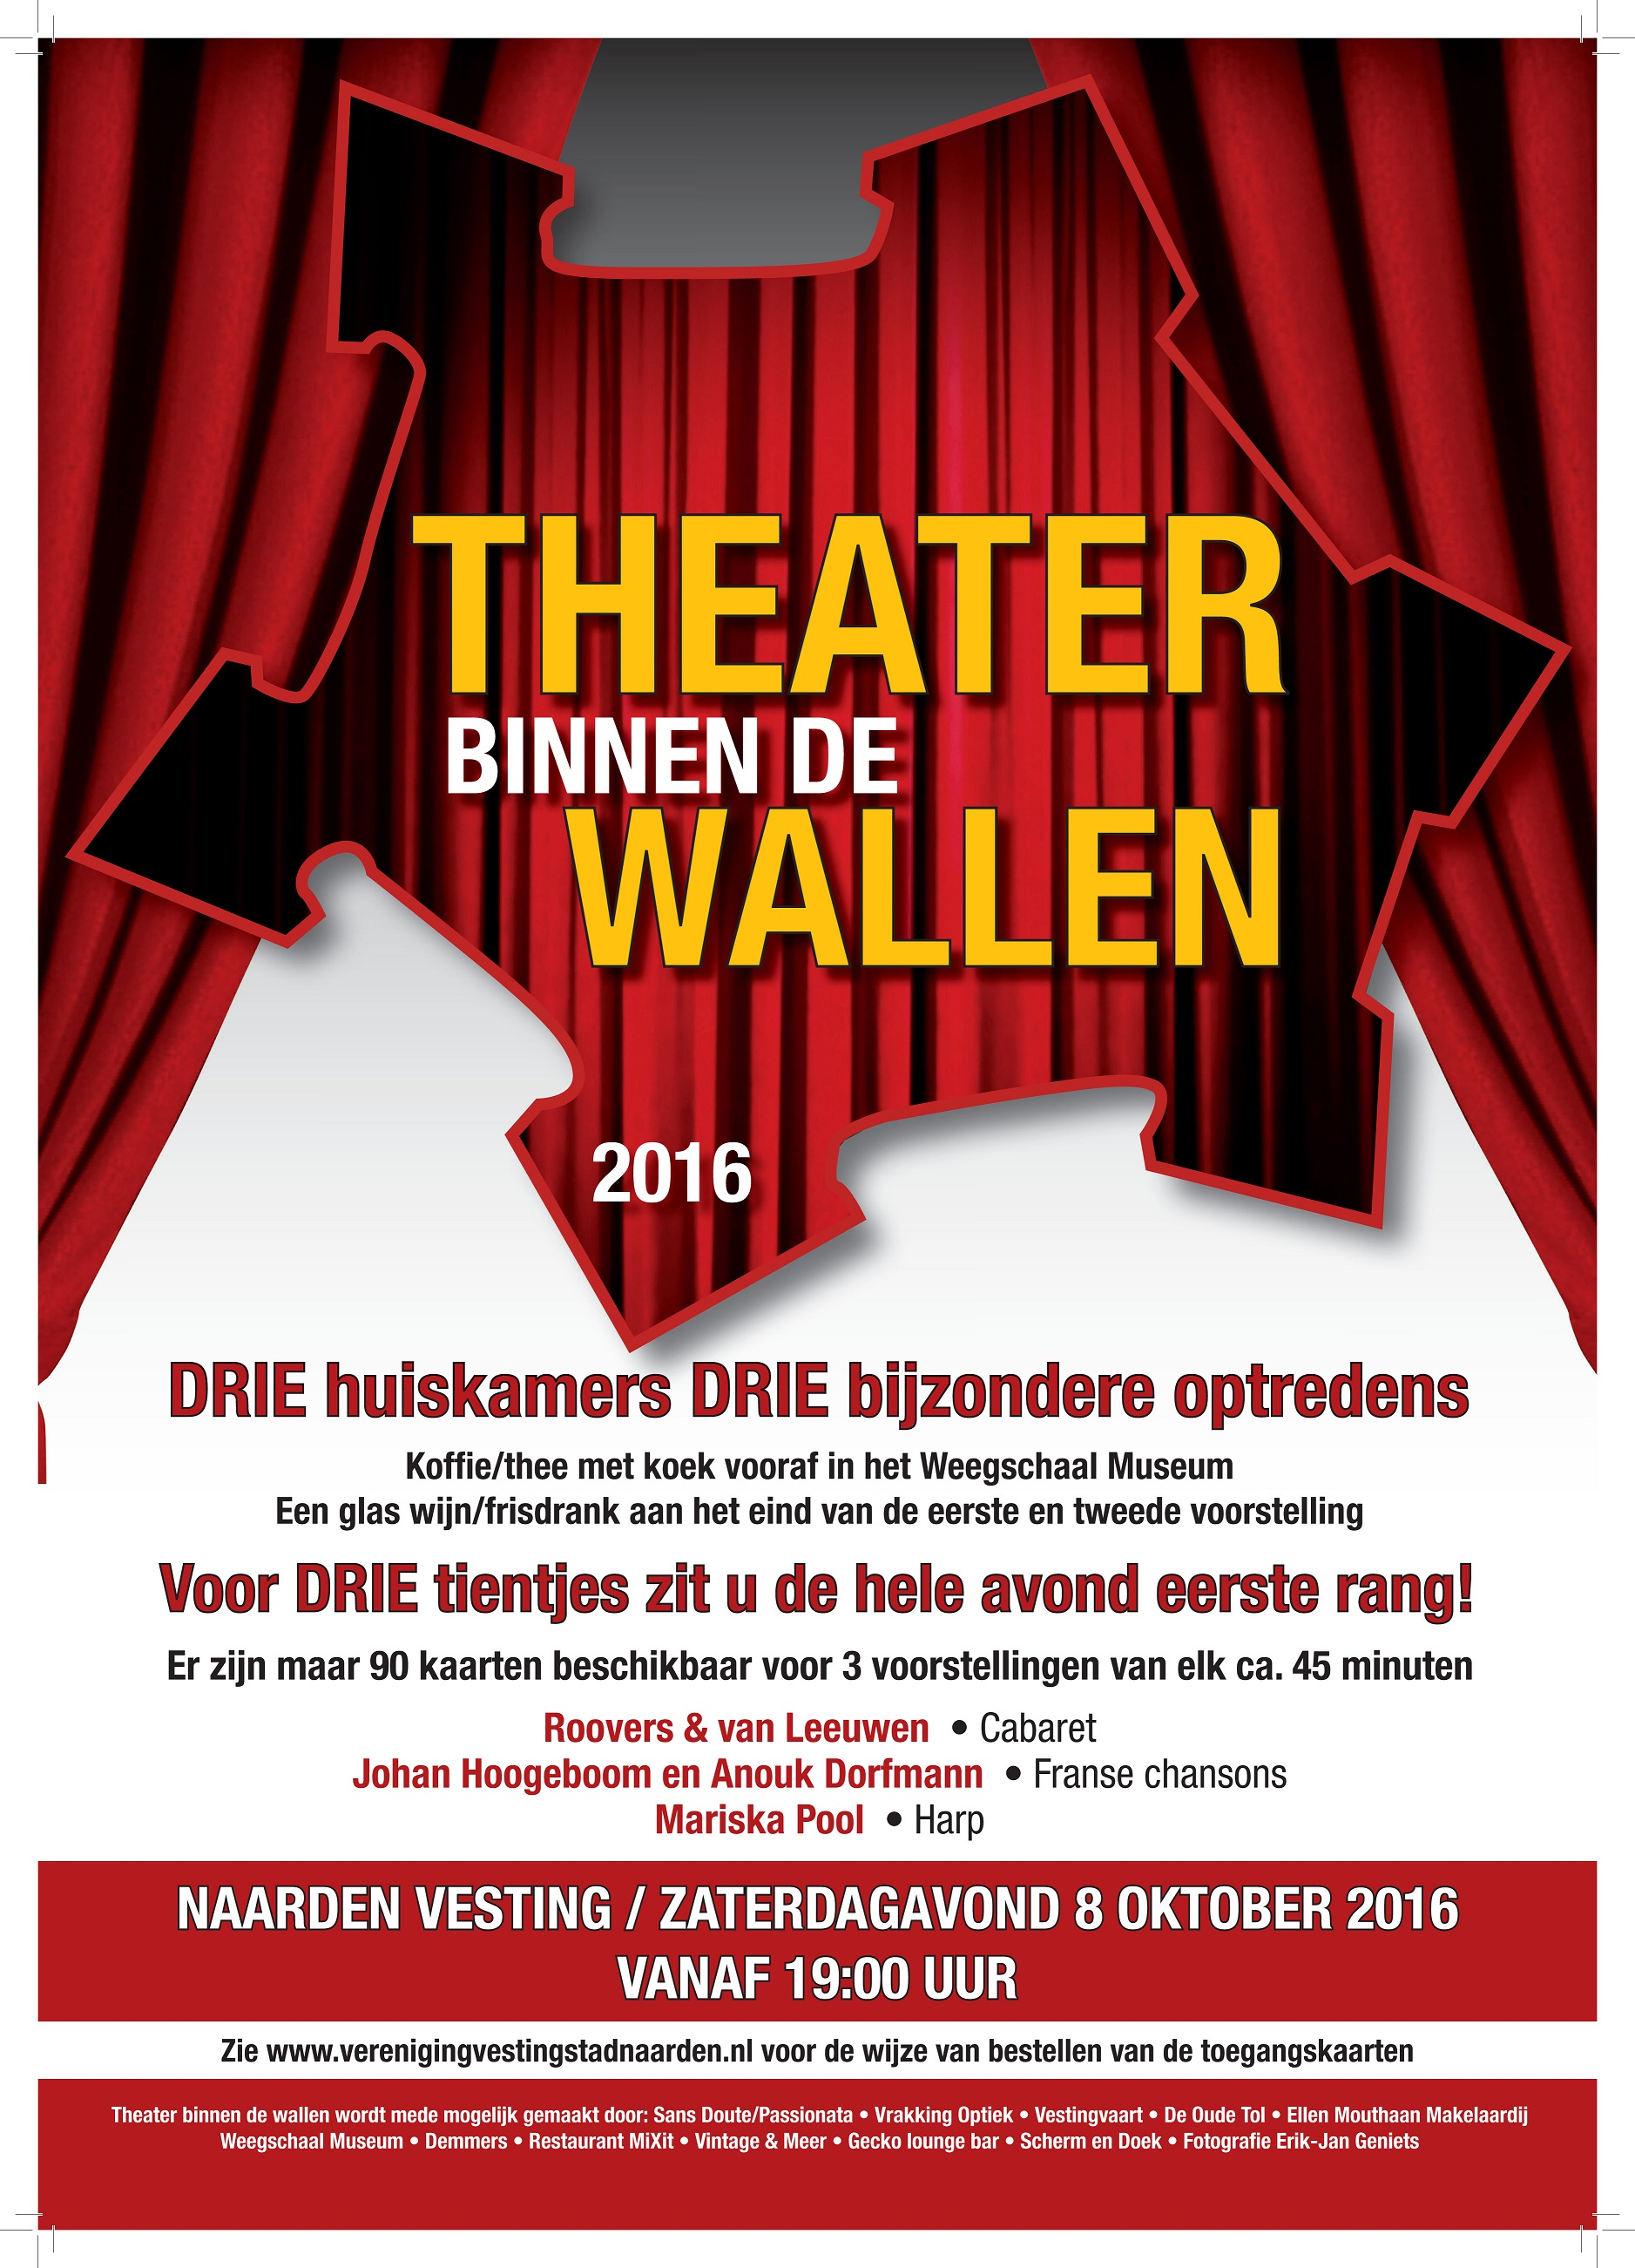 poster Theater wallen 2016.indd